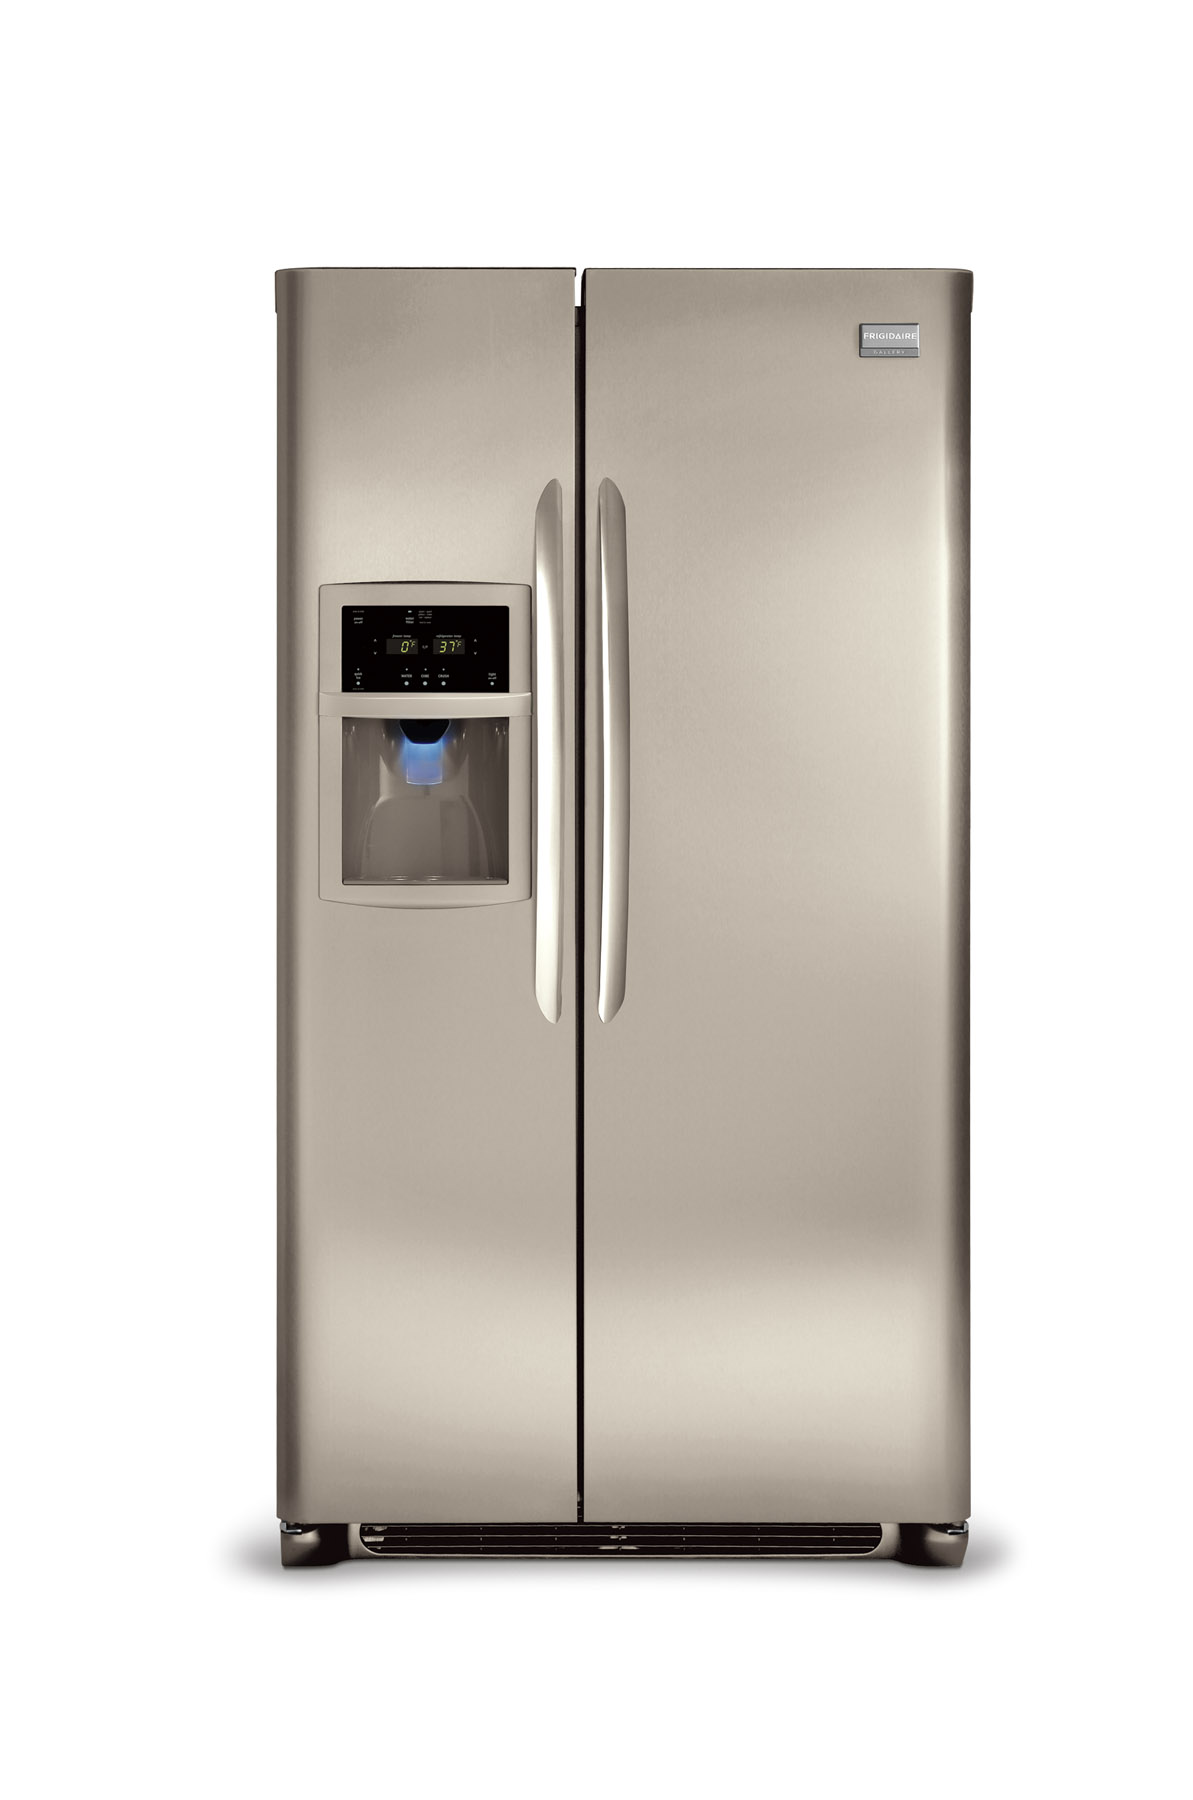 Frigidaire Refrigerator Model FGHS2644KM1 Parts